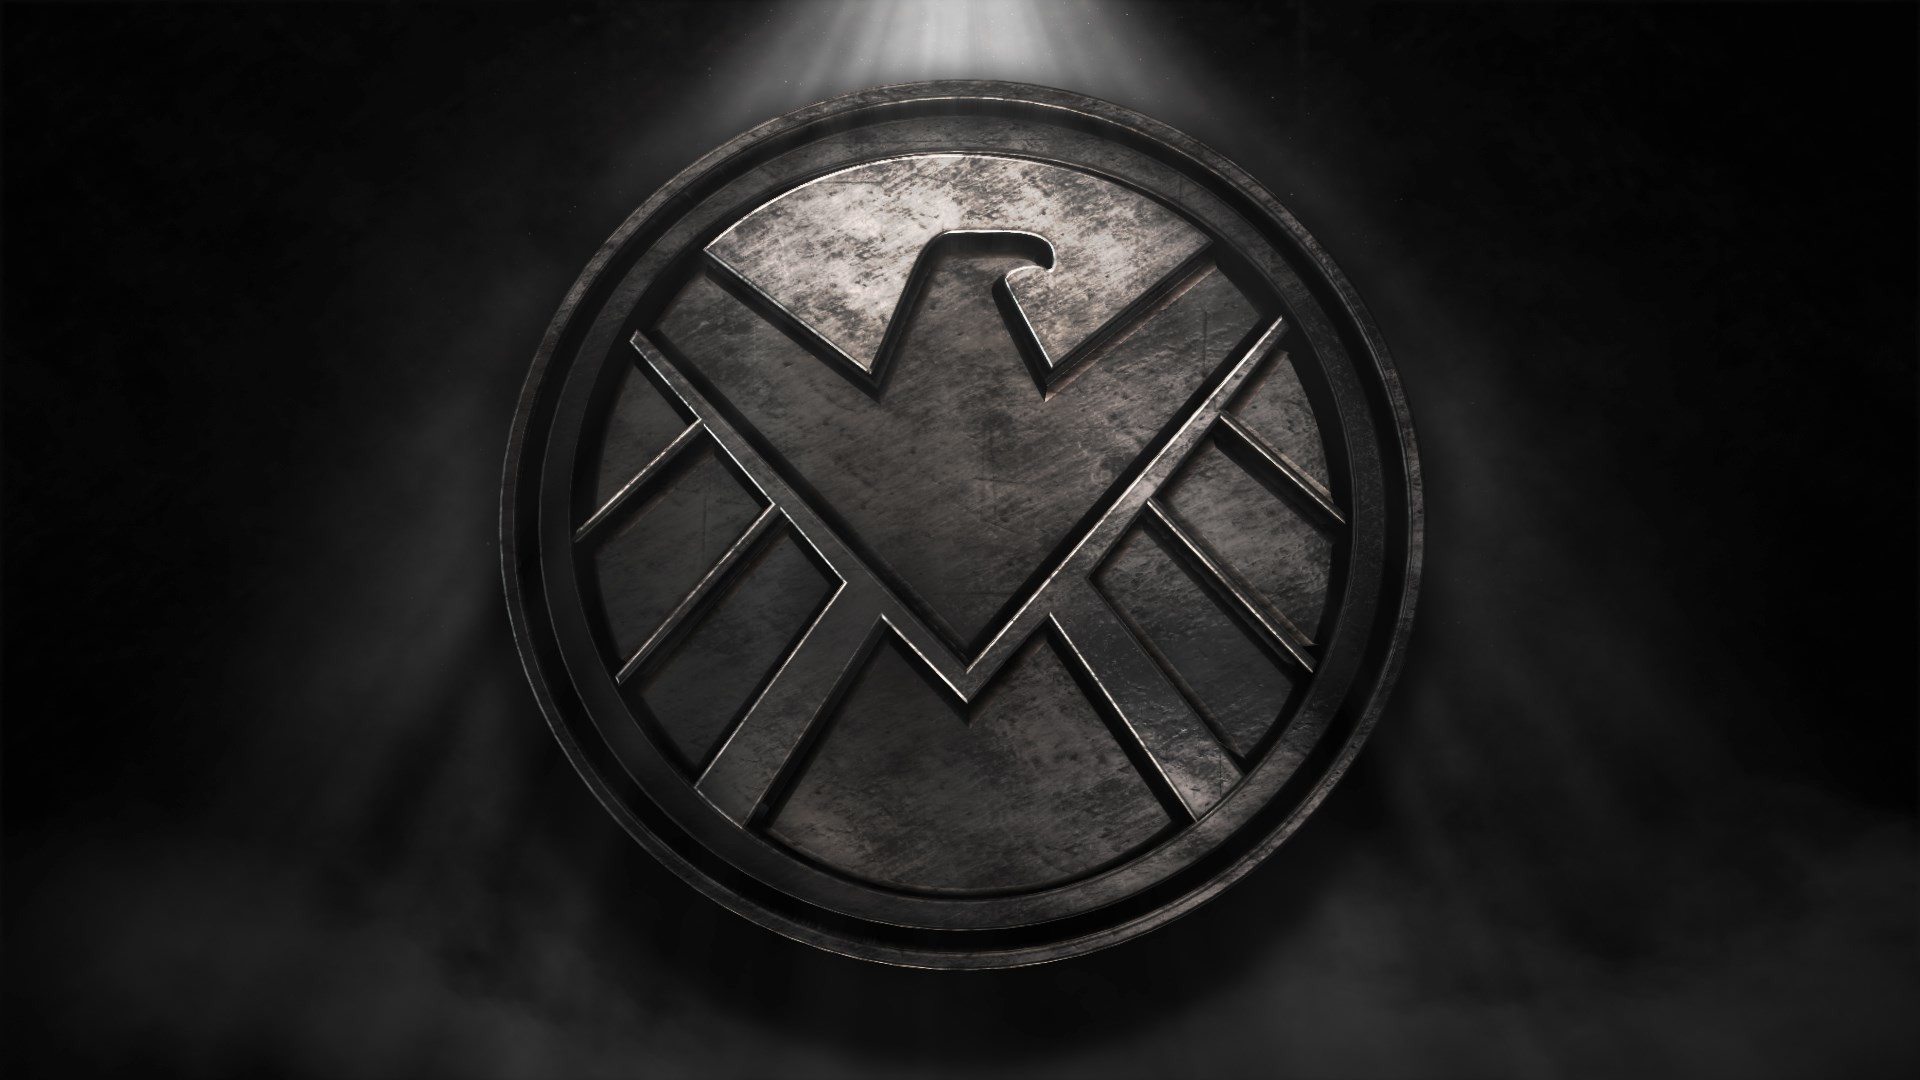 1920x1080 Free computer marvels agents of shield wallpaper - marvels agents of shield  category